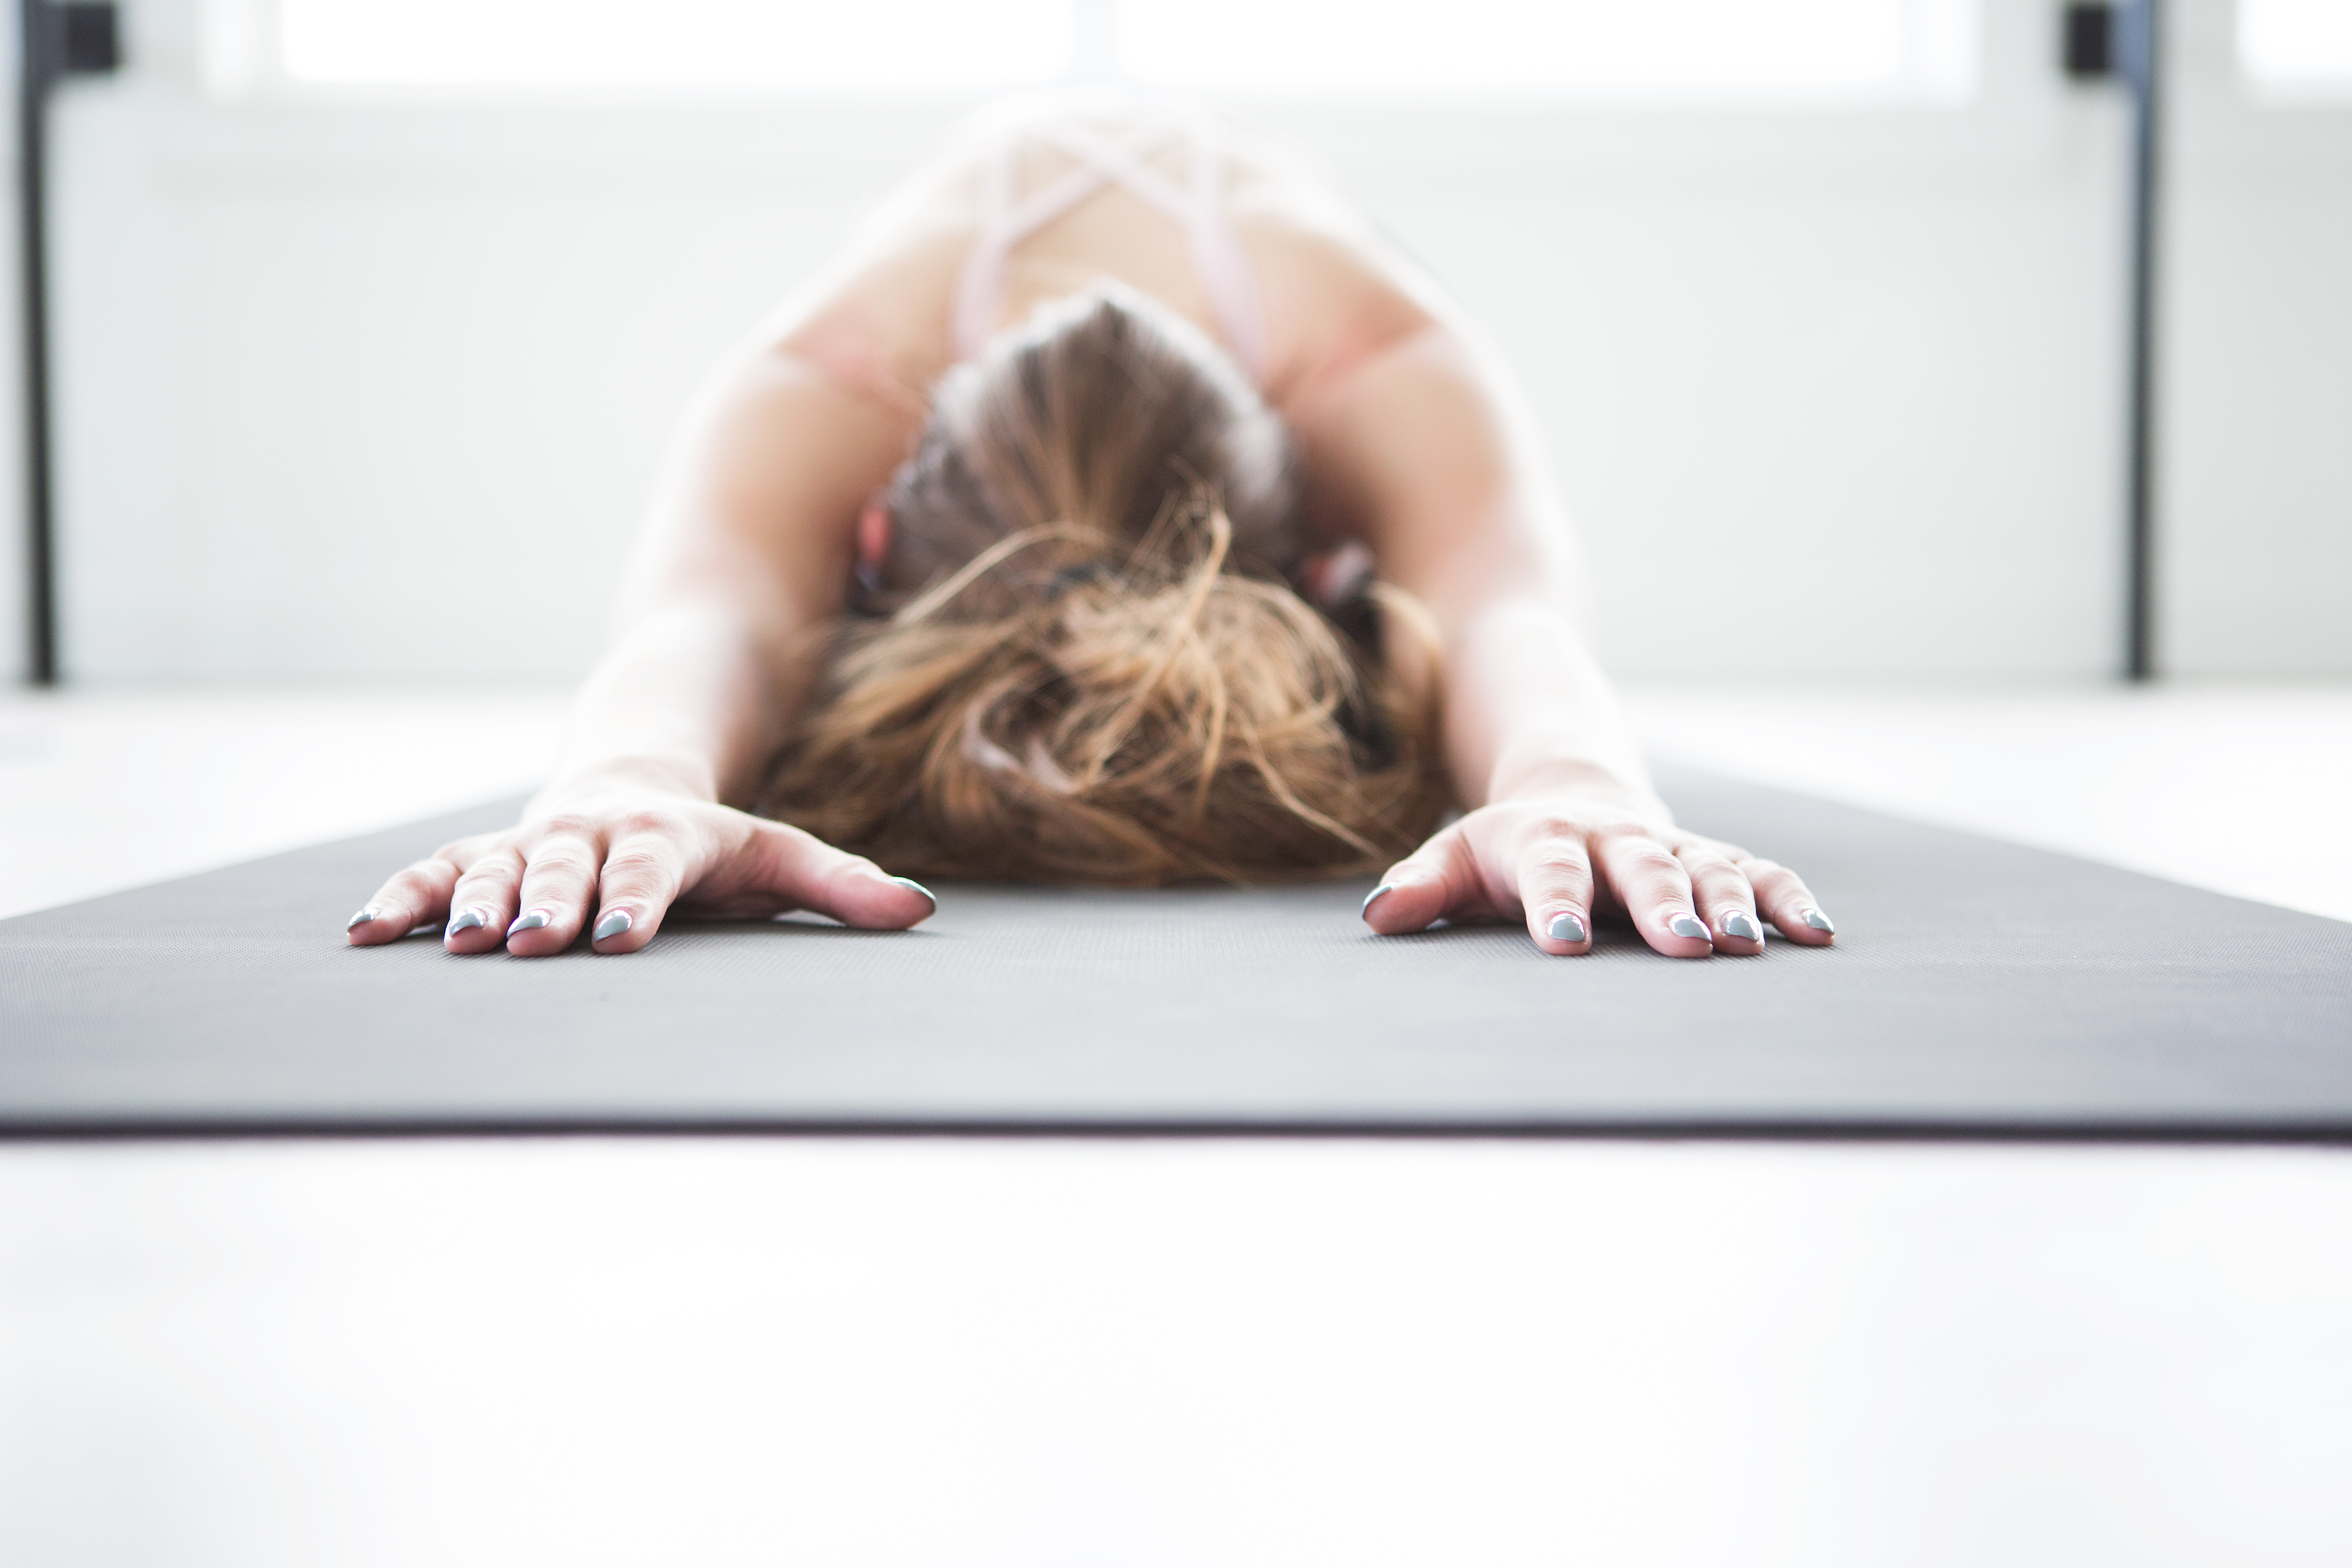 These YouTube videos are simple ways for beginners to start #yoga to help relieve feelings of #anxiety. They're simple routines that you can practice at home morning or night to help decrease your stress. #yogainspiration #yogaeverydamnday #mentalhealth #mindset #healthy #healthyliving #healthylifestyle